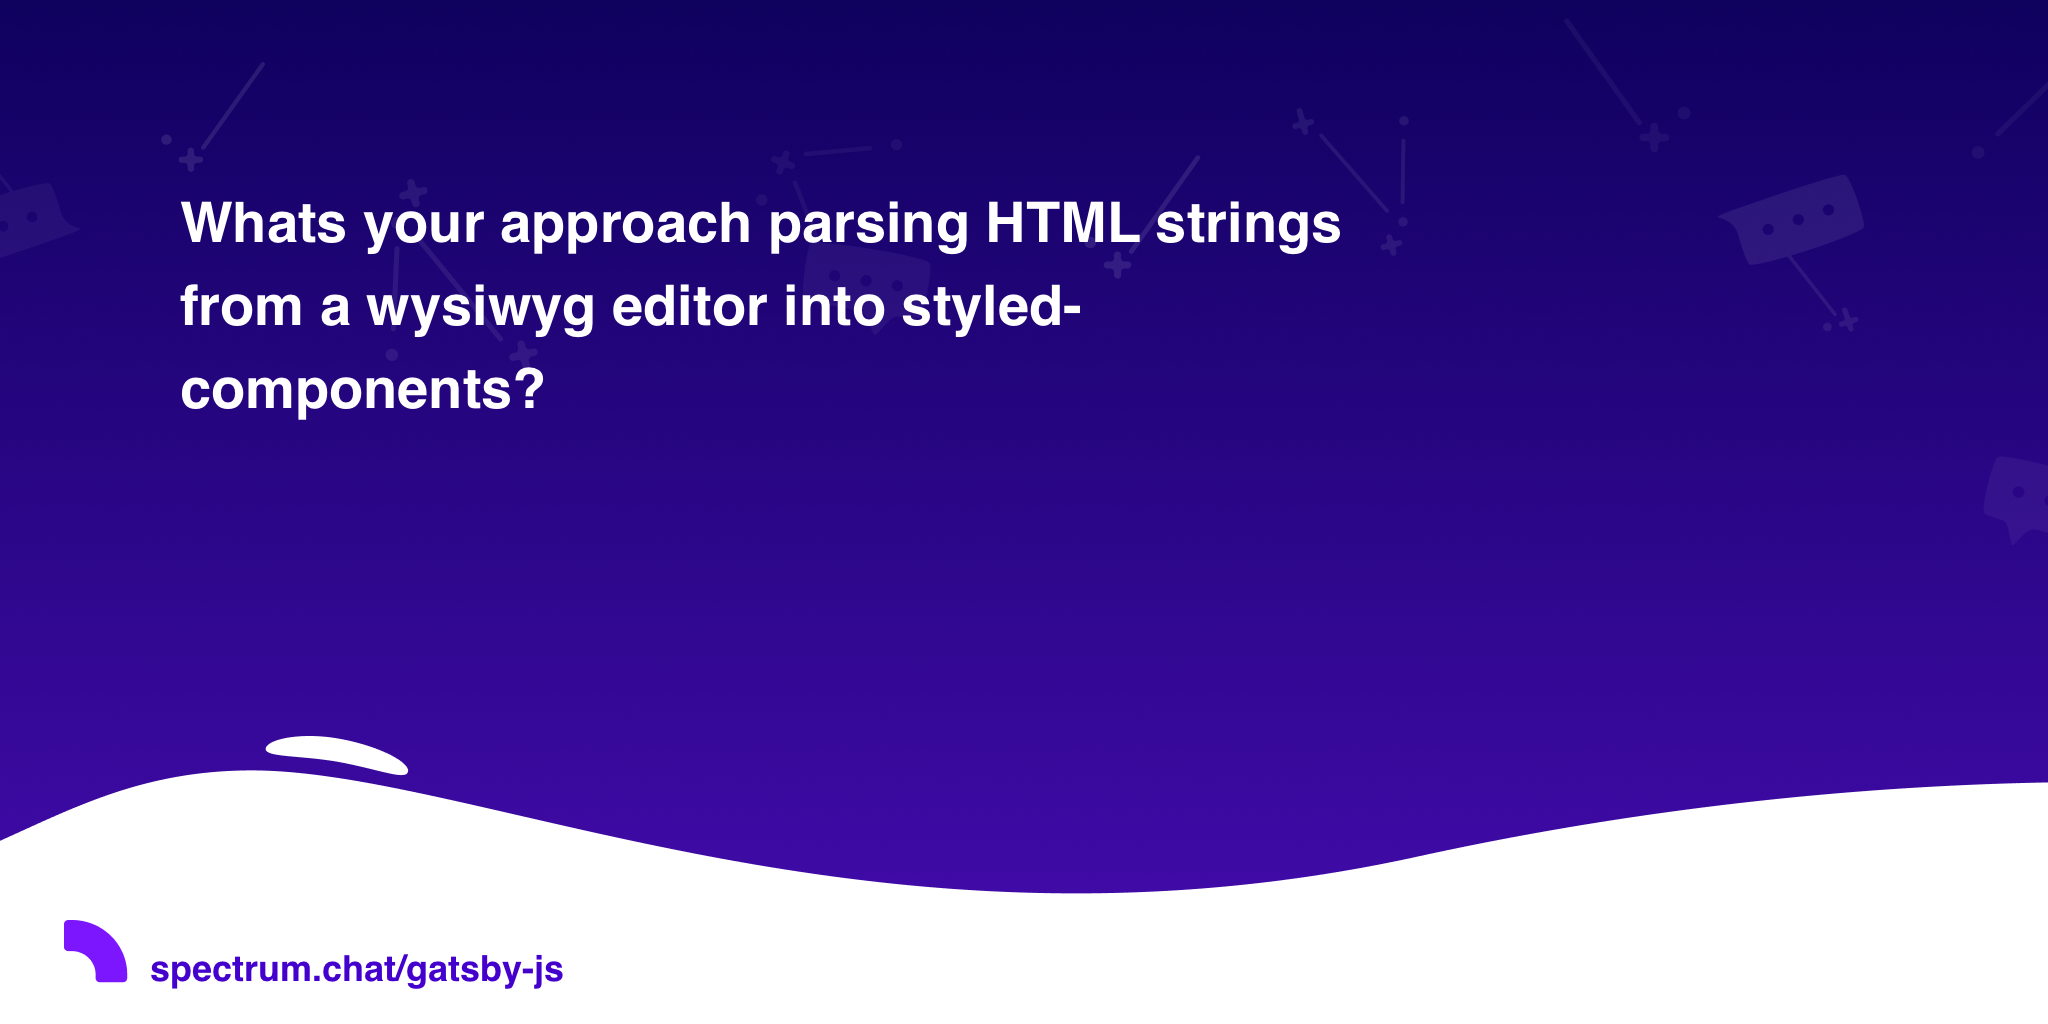 Whats your approach parsing HTML strings from a wysiwyg